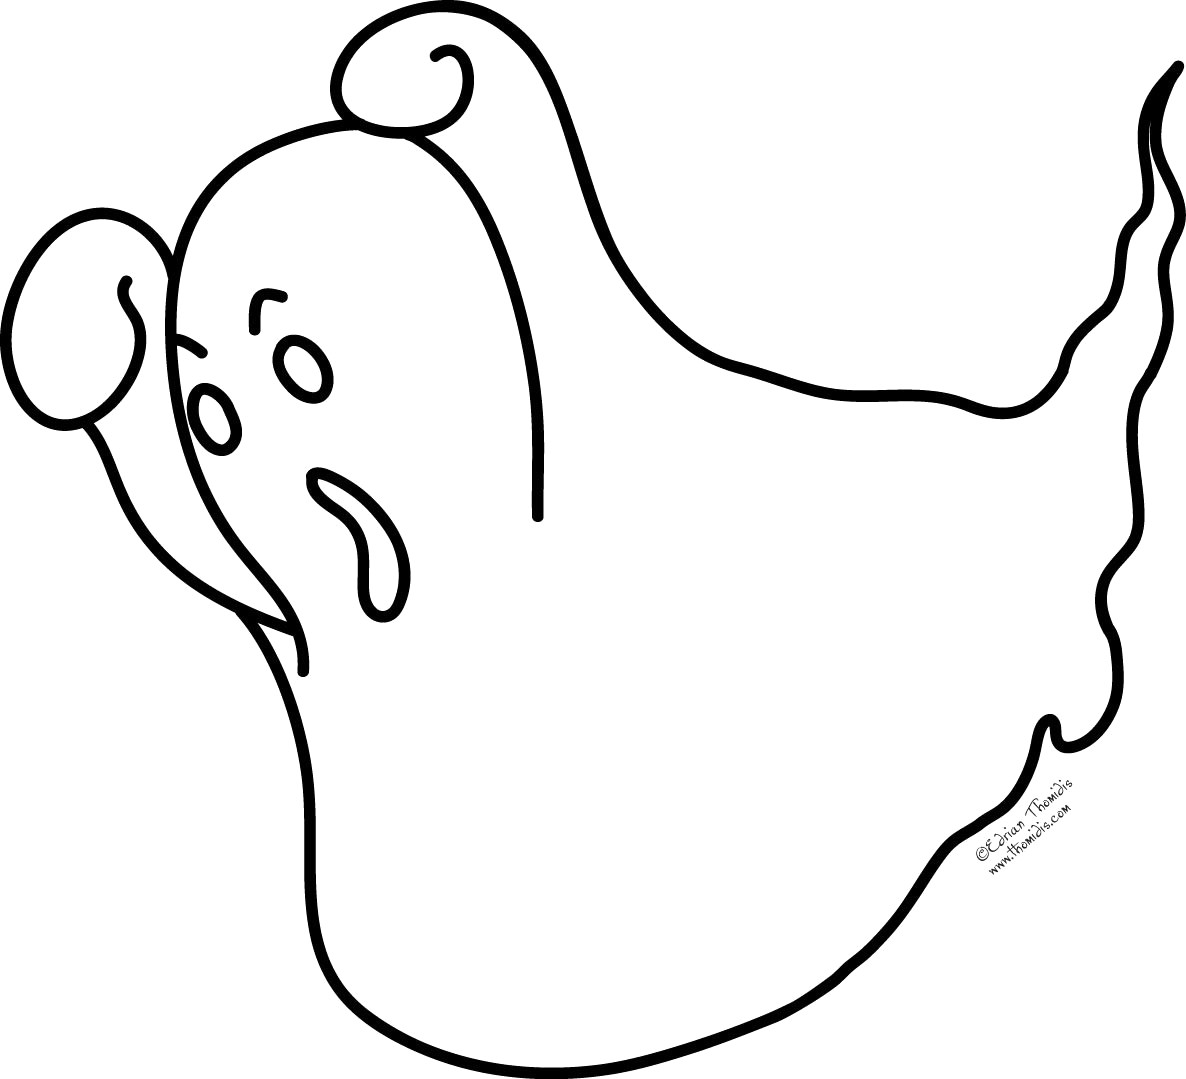 1186x1079 Cute Halloween Coloring Pages For Kids Lovely Cozy Design Ghost